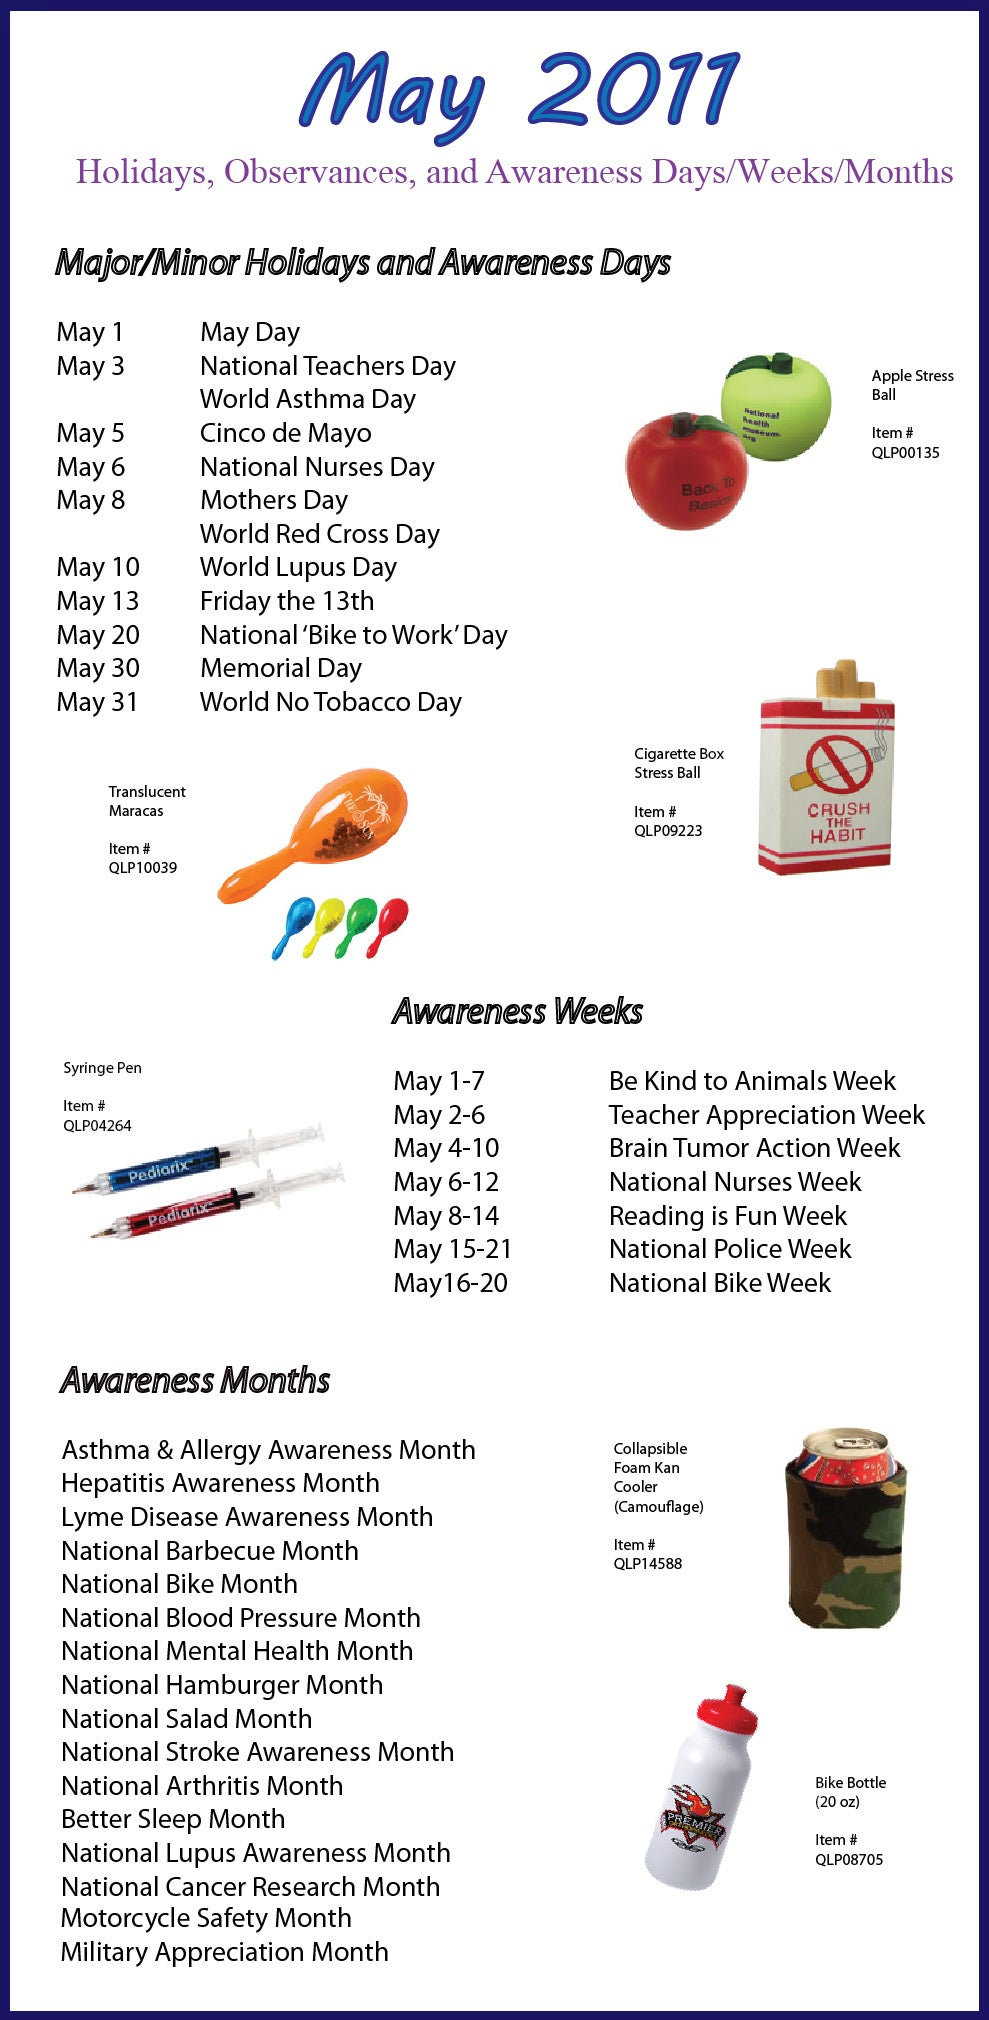 May 2011 Holidays, Observances, and Awareness Dates